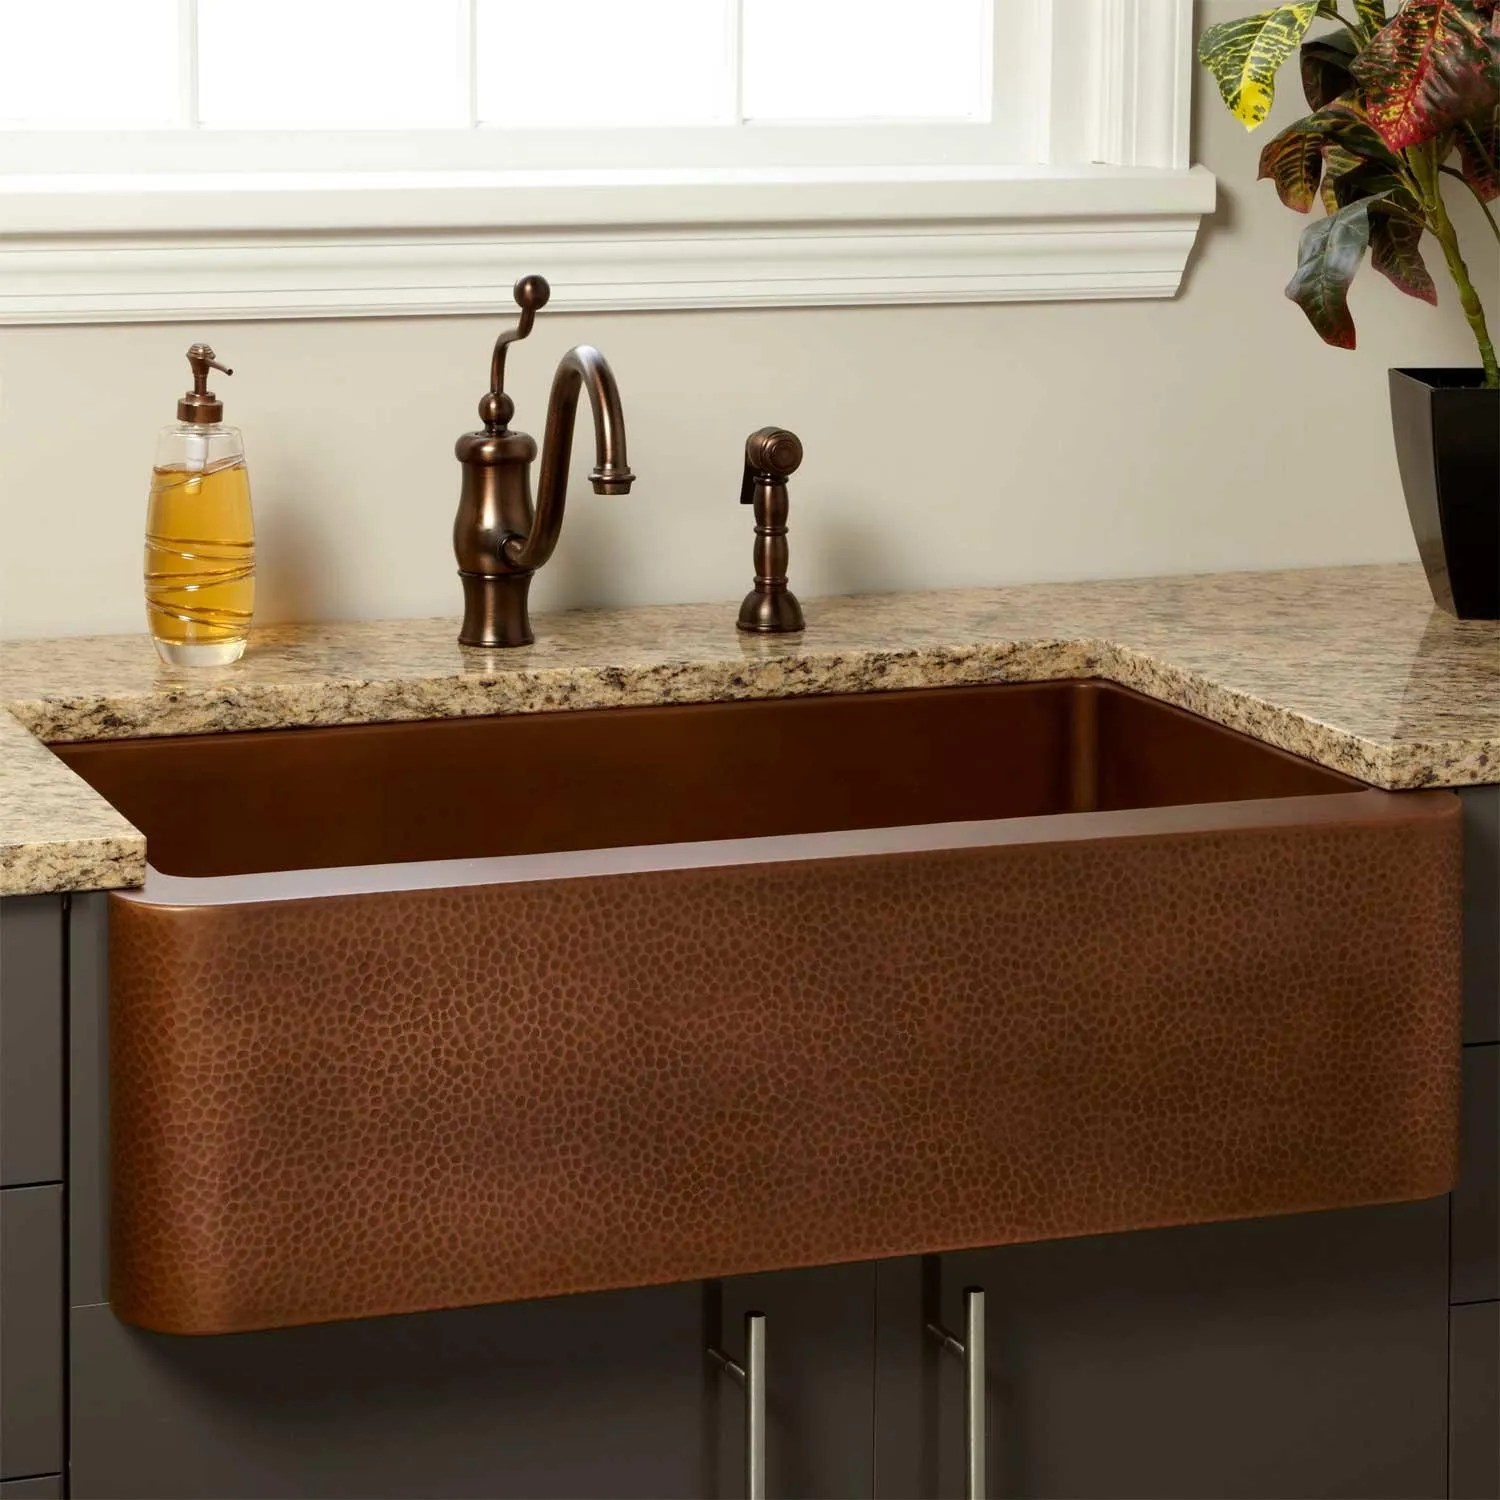 36 Vernon Hammered Copper Farmhouse Sink Kitchen